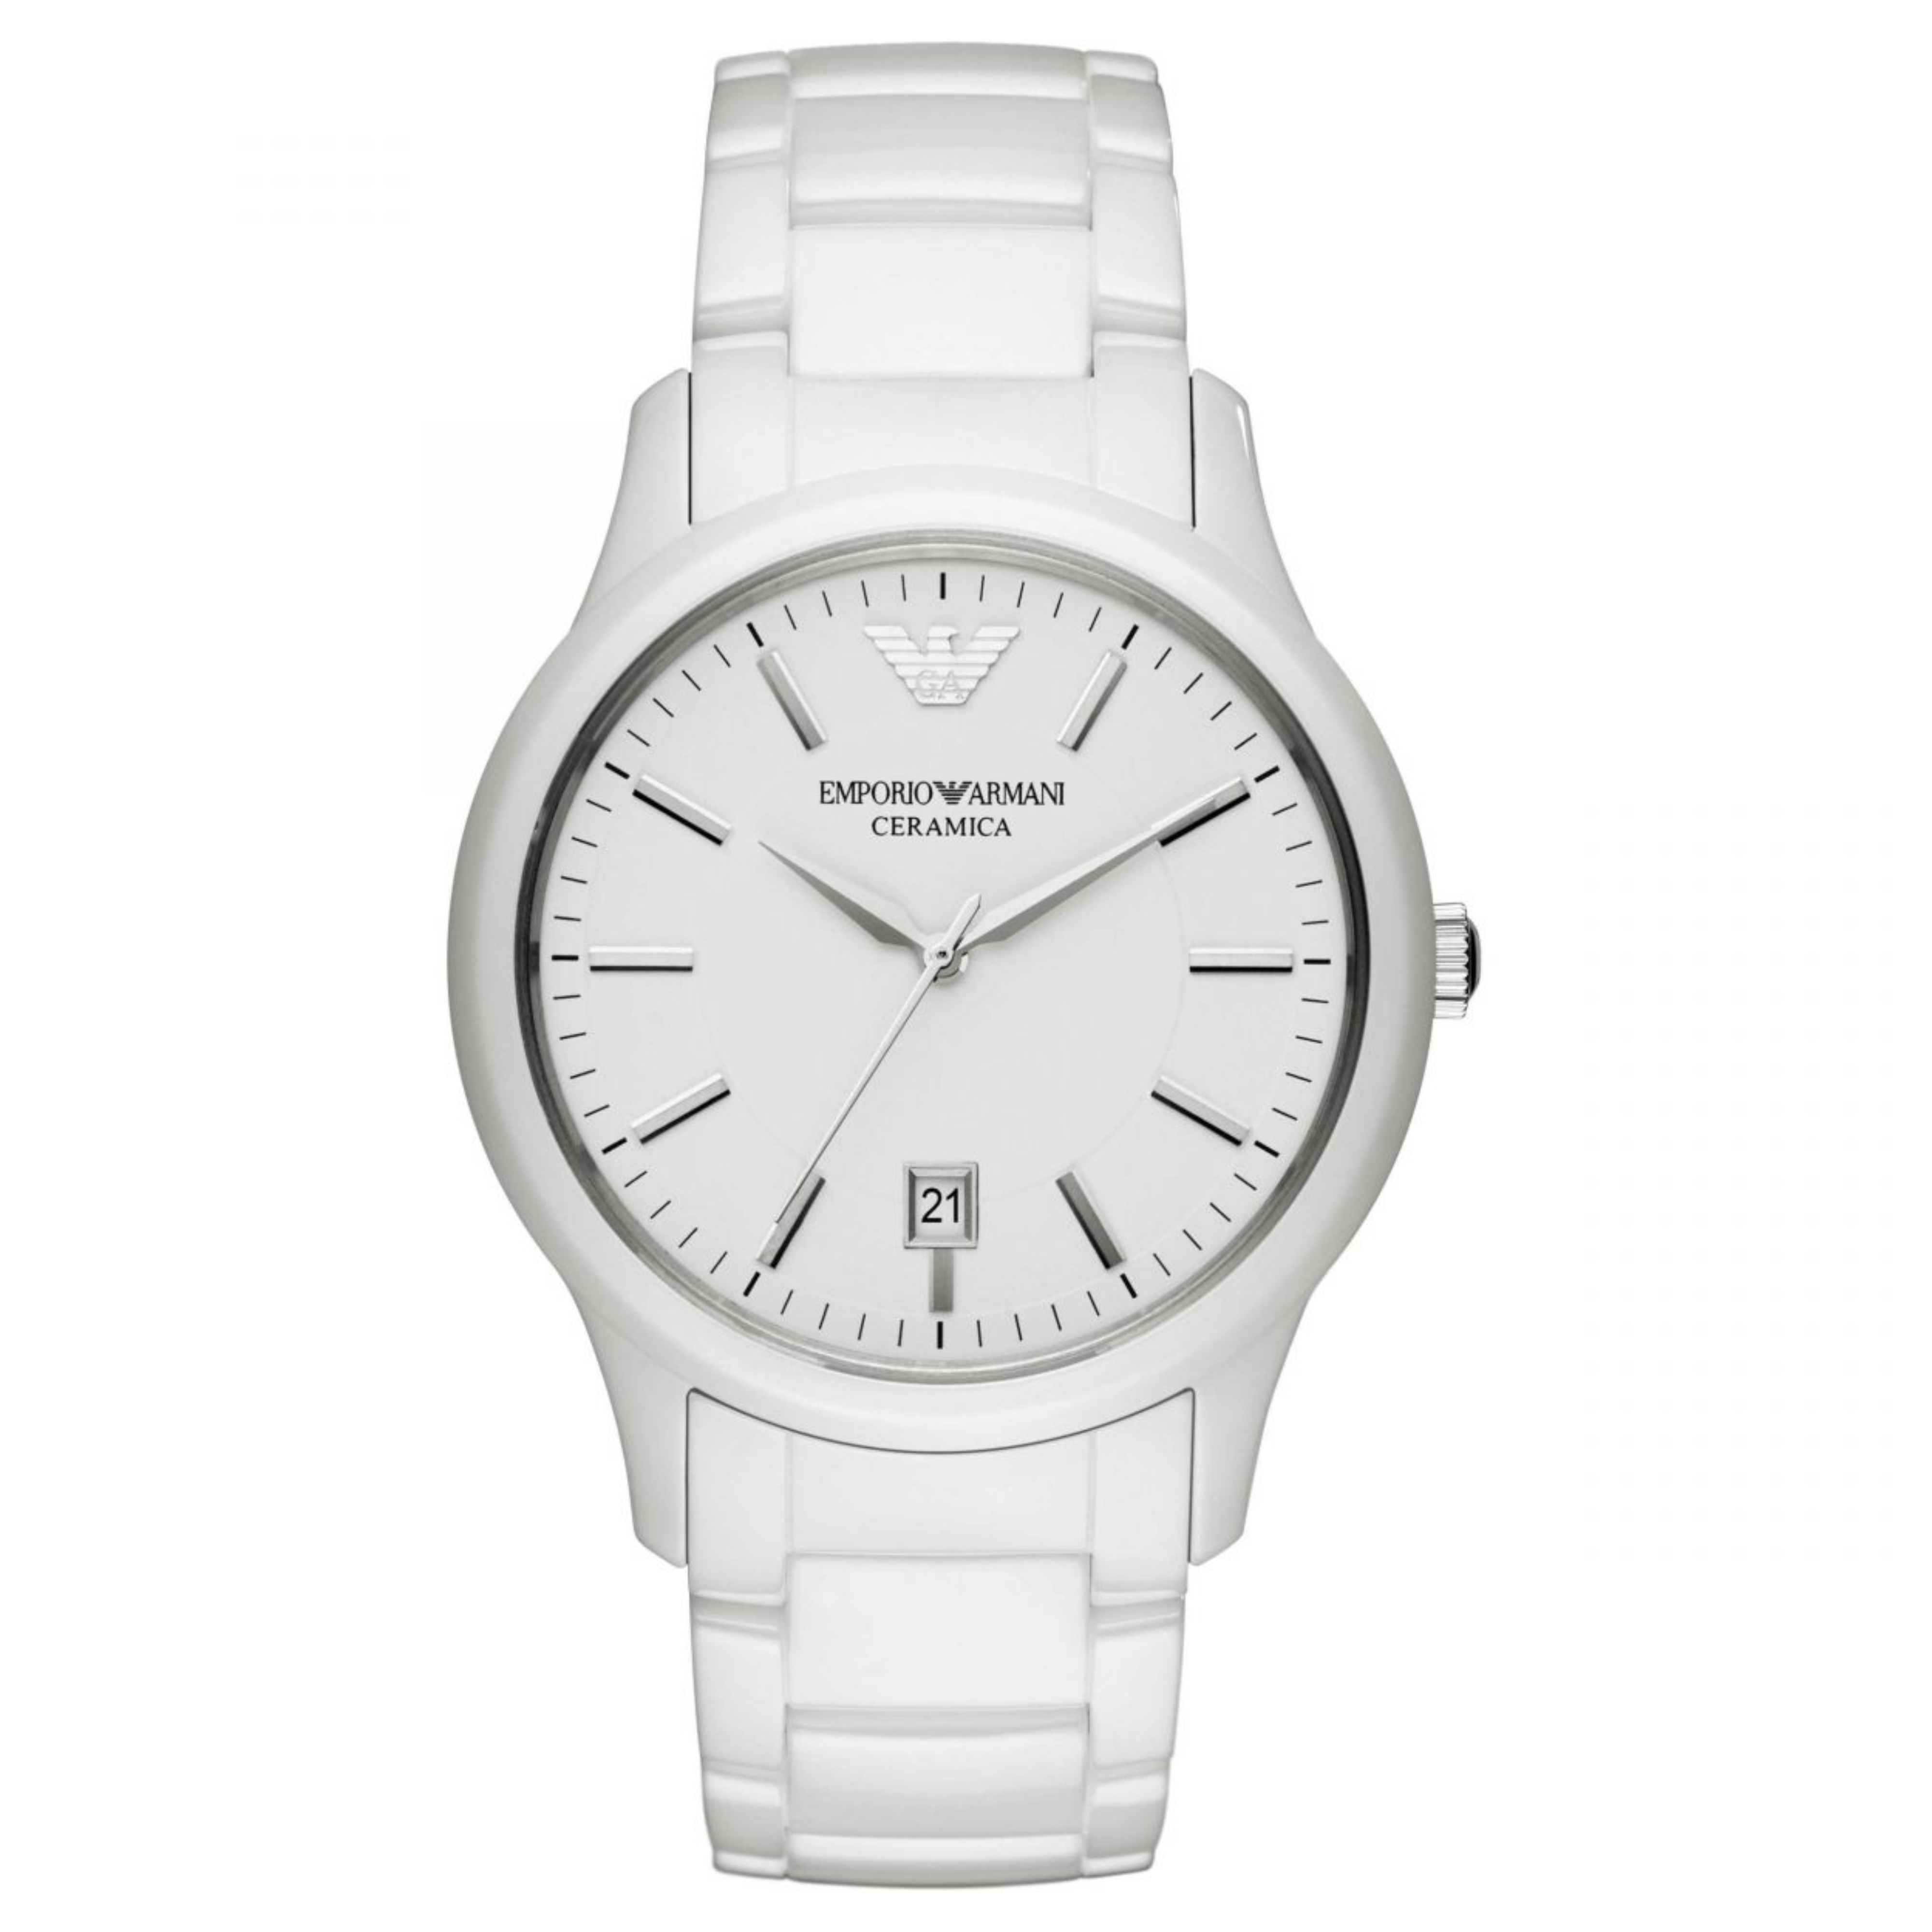 Emporio Armani Men's Watch|White Round Dial|White Ceramic Bracelet Band|AR1476